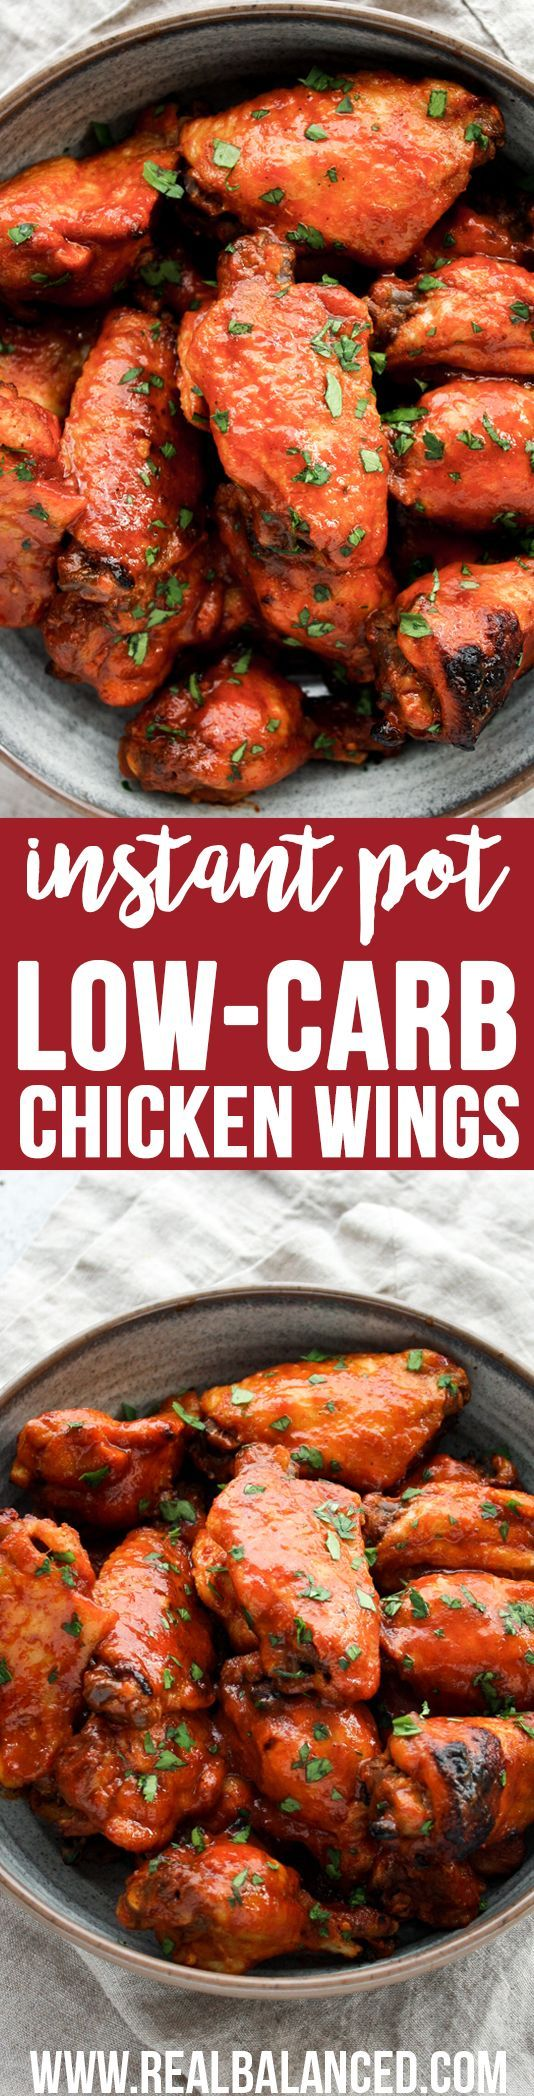 Instant Pot Low-Carb Sweet & Spicy Barbecue Chicken Wings: Low-carb, keto, paleo, dairy-free, gluten-free, grain-free, and refined-sugar-free; only 1.6g net carbs per serving!